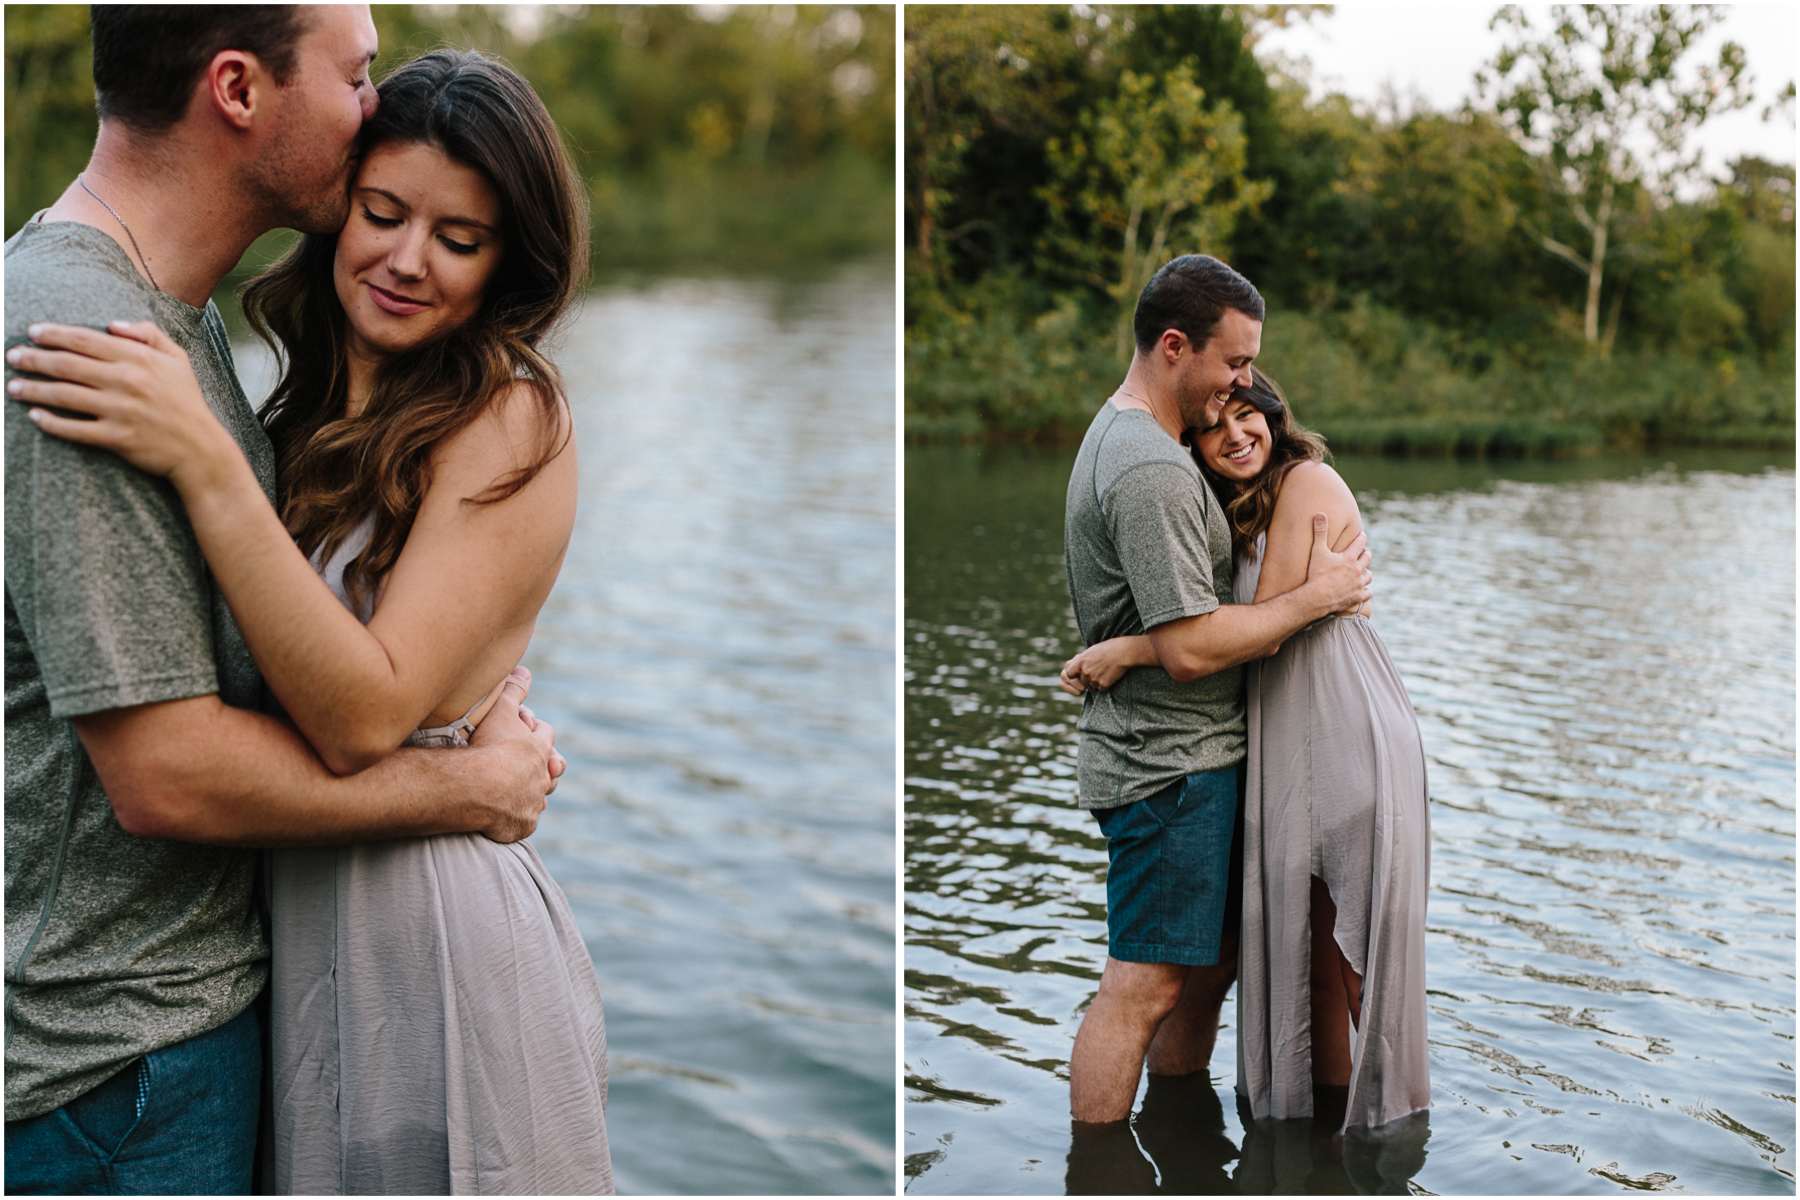 alyssa barletter photography shawnee mission park lake water shoot ricky and maddie-14.jpg